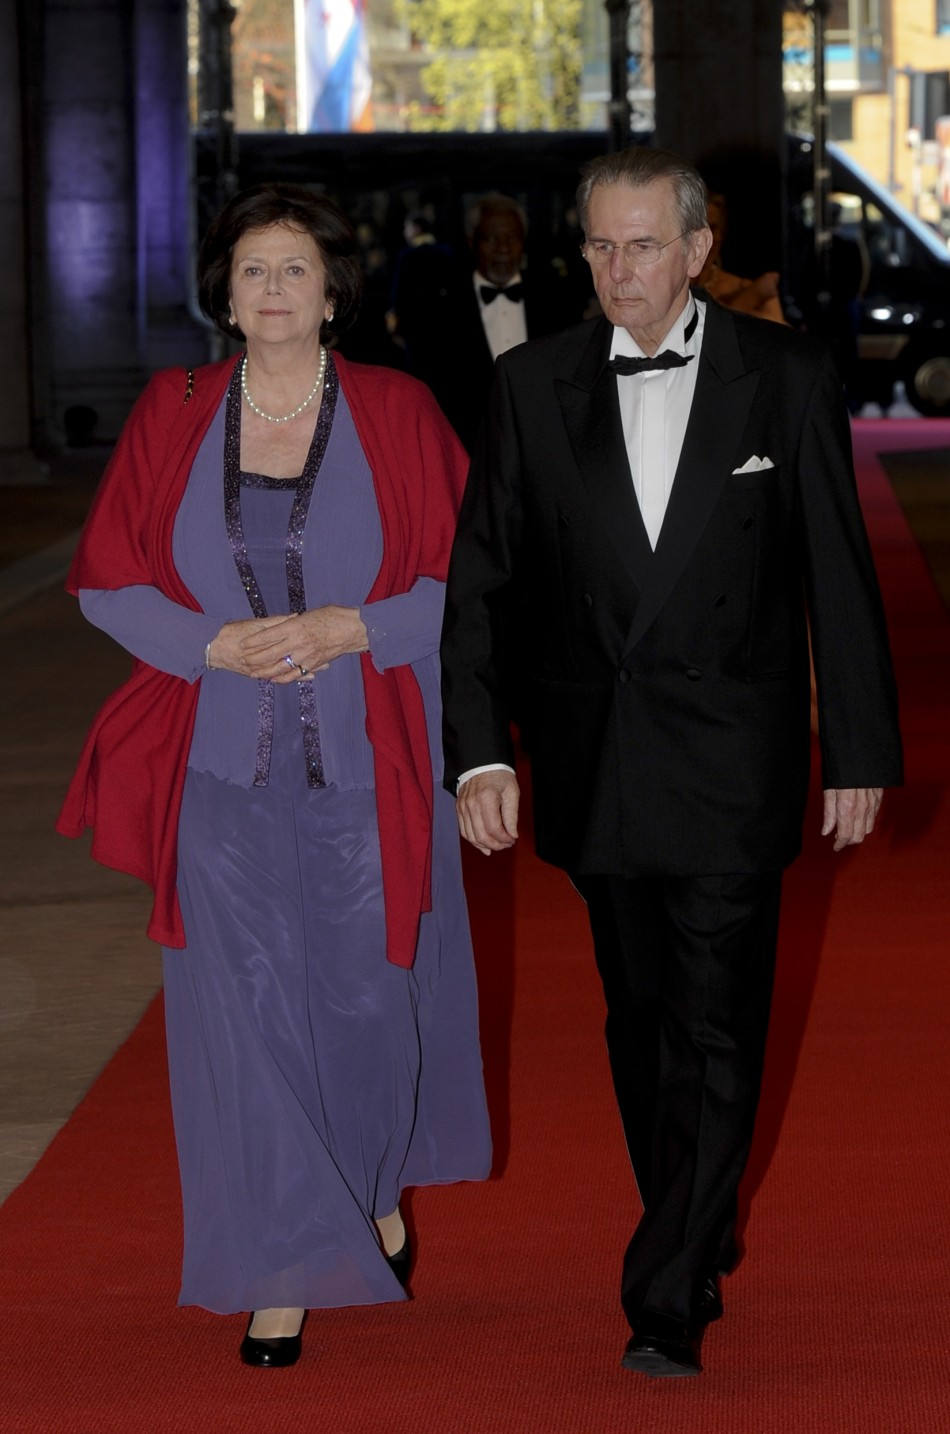 International Olympic Committee IOC President Jacques Rogge R and his wife Anne Rogge arrive at a gala dinner organised on the eve of the abdication of Queen Beatrix of the Netherlands and the inauguration of her successor King Willem-Alexander at the